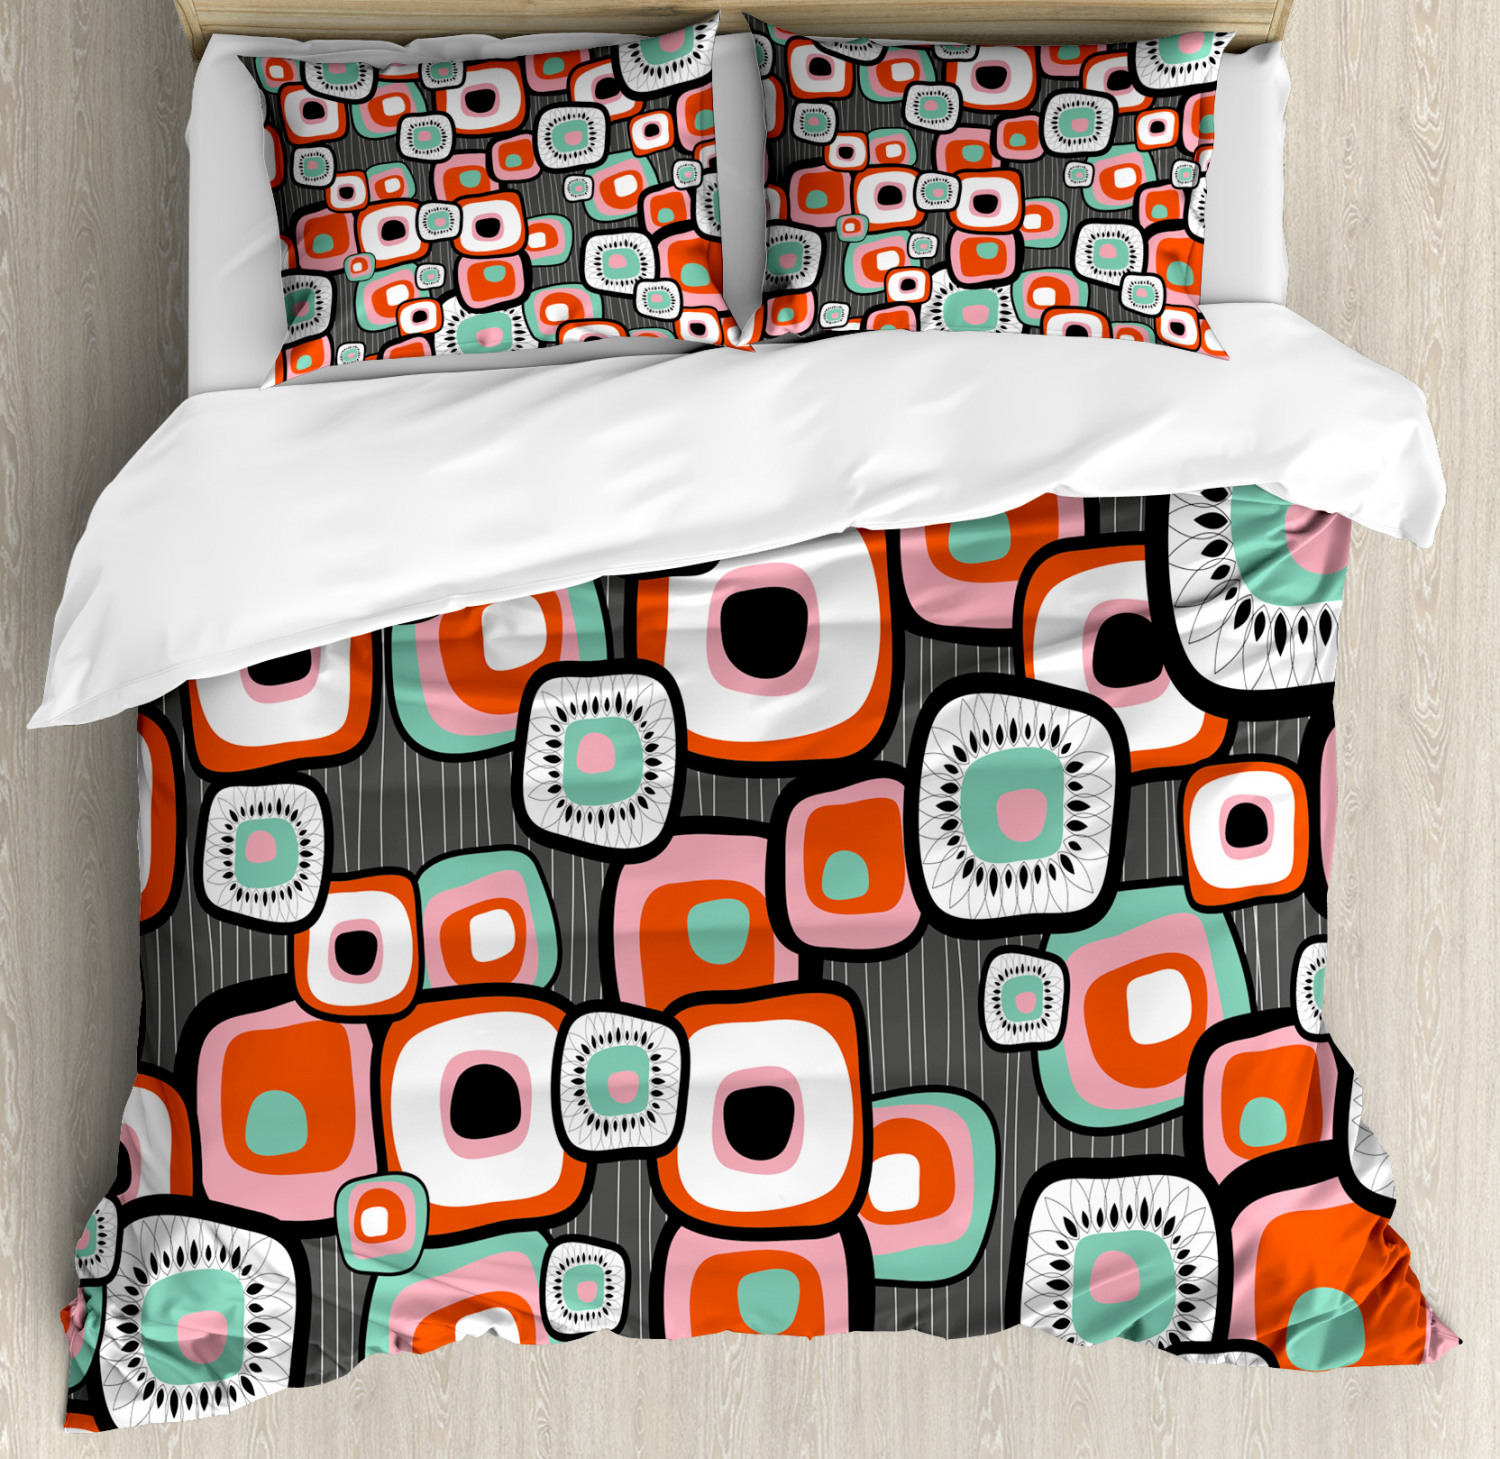 Vintage Duvet Cover Set with Pillow Shams Funk Lava Flowers Forms Print